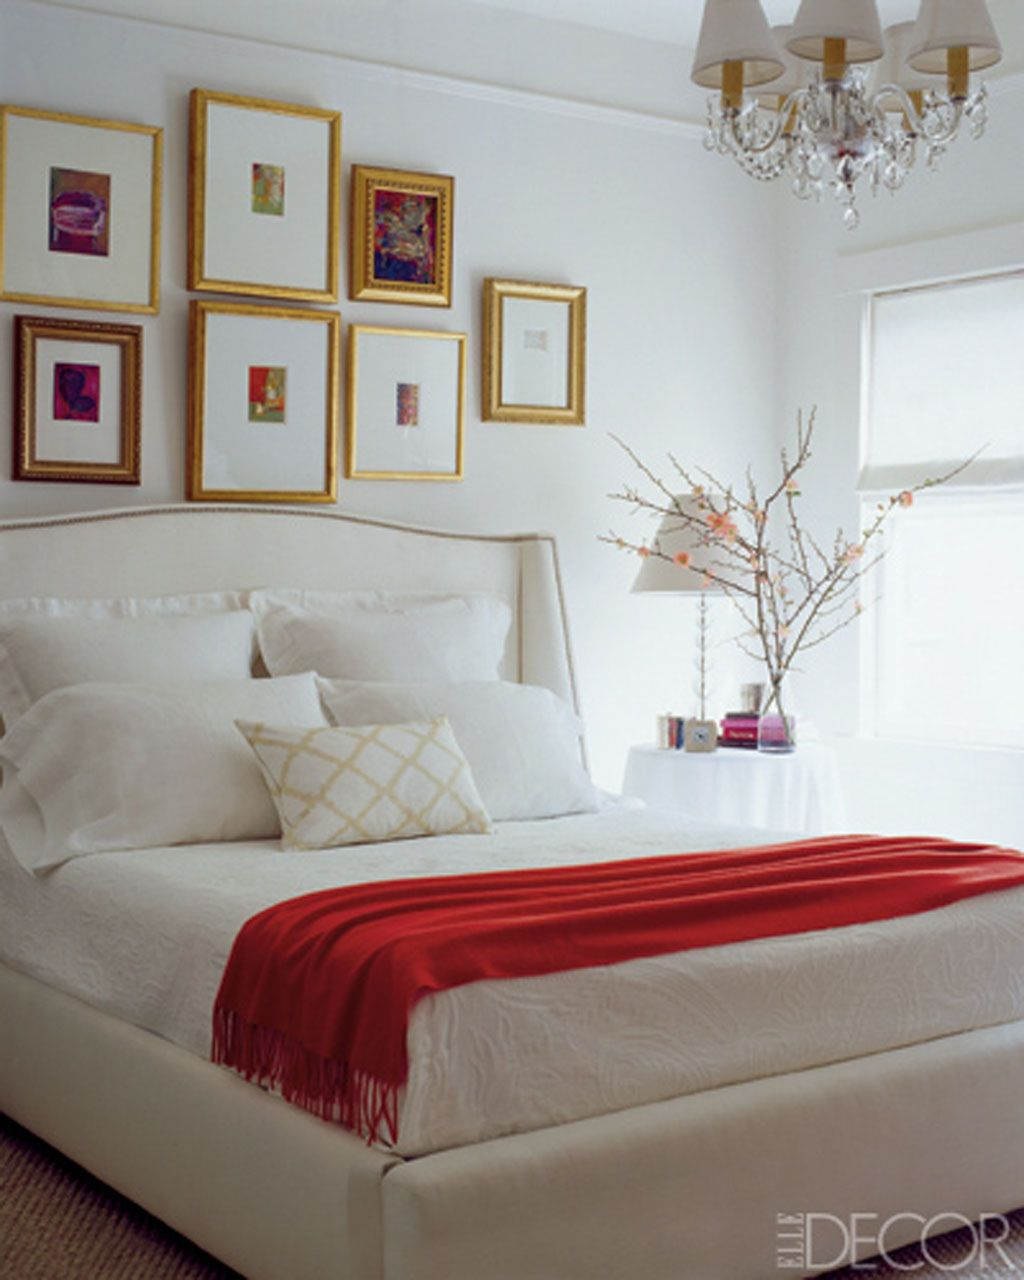 25 White Bedroom Furniture Design Ideas. 25 White Bedroom Furniture Design Ideas   Red interior design  Red